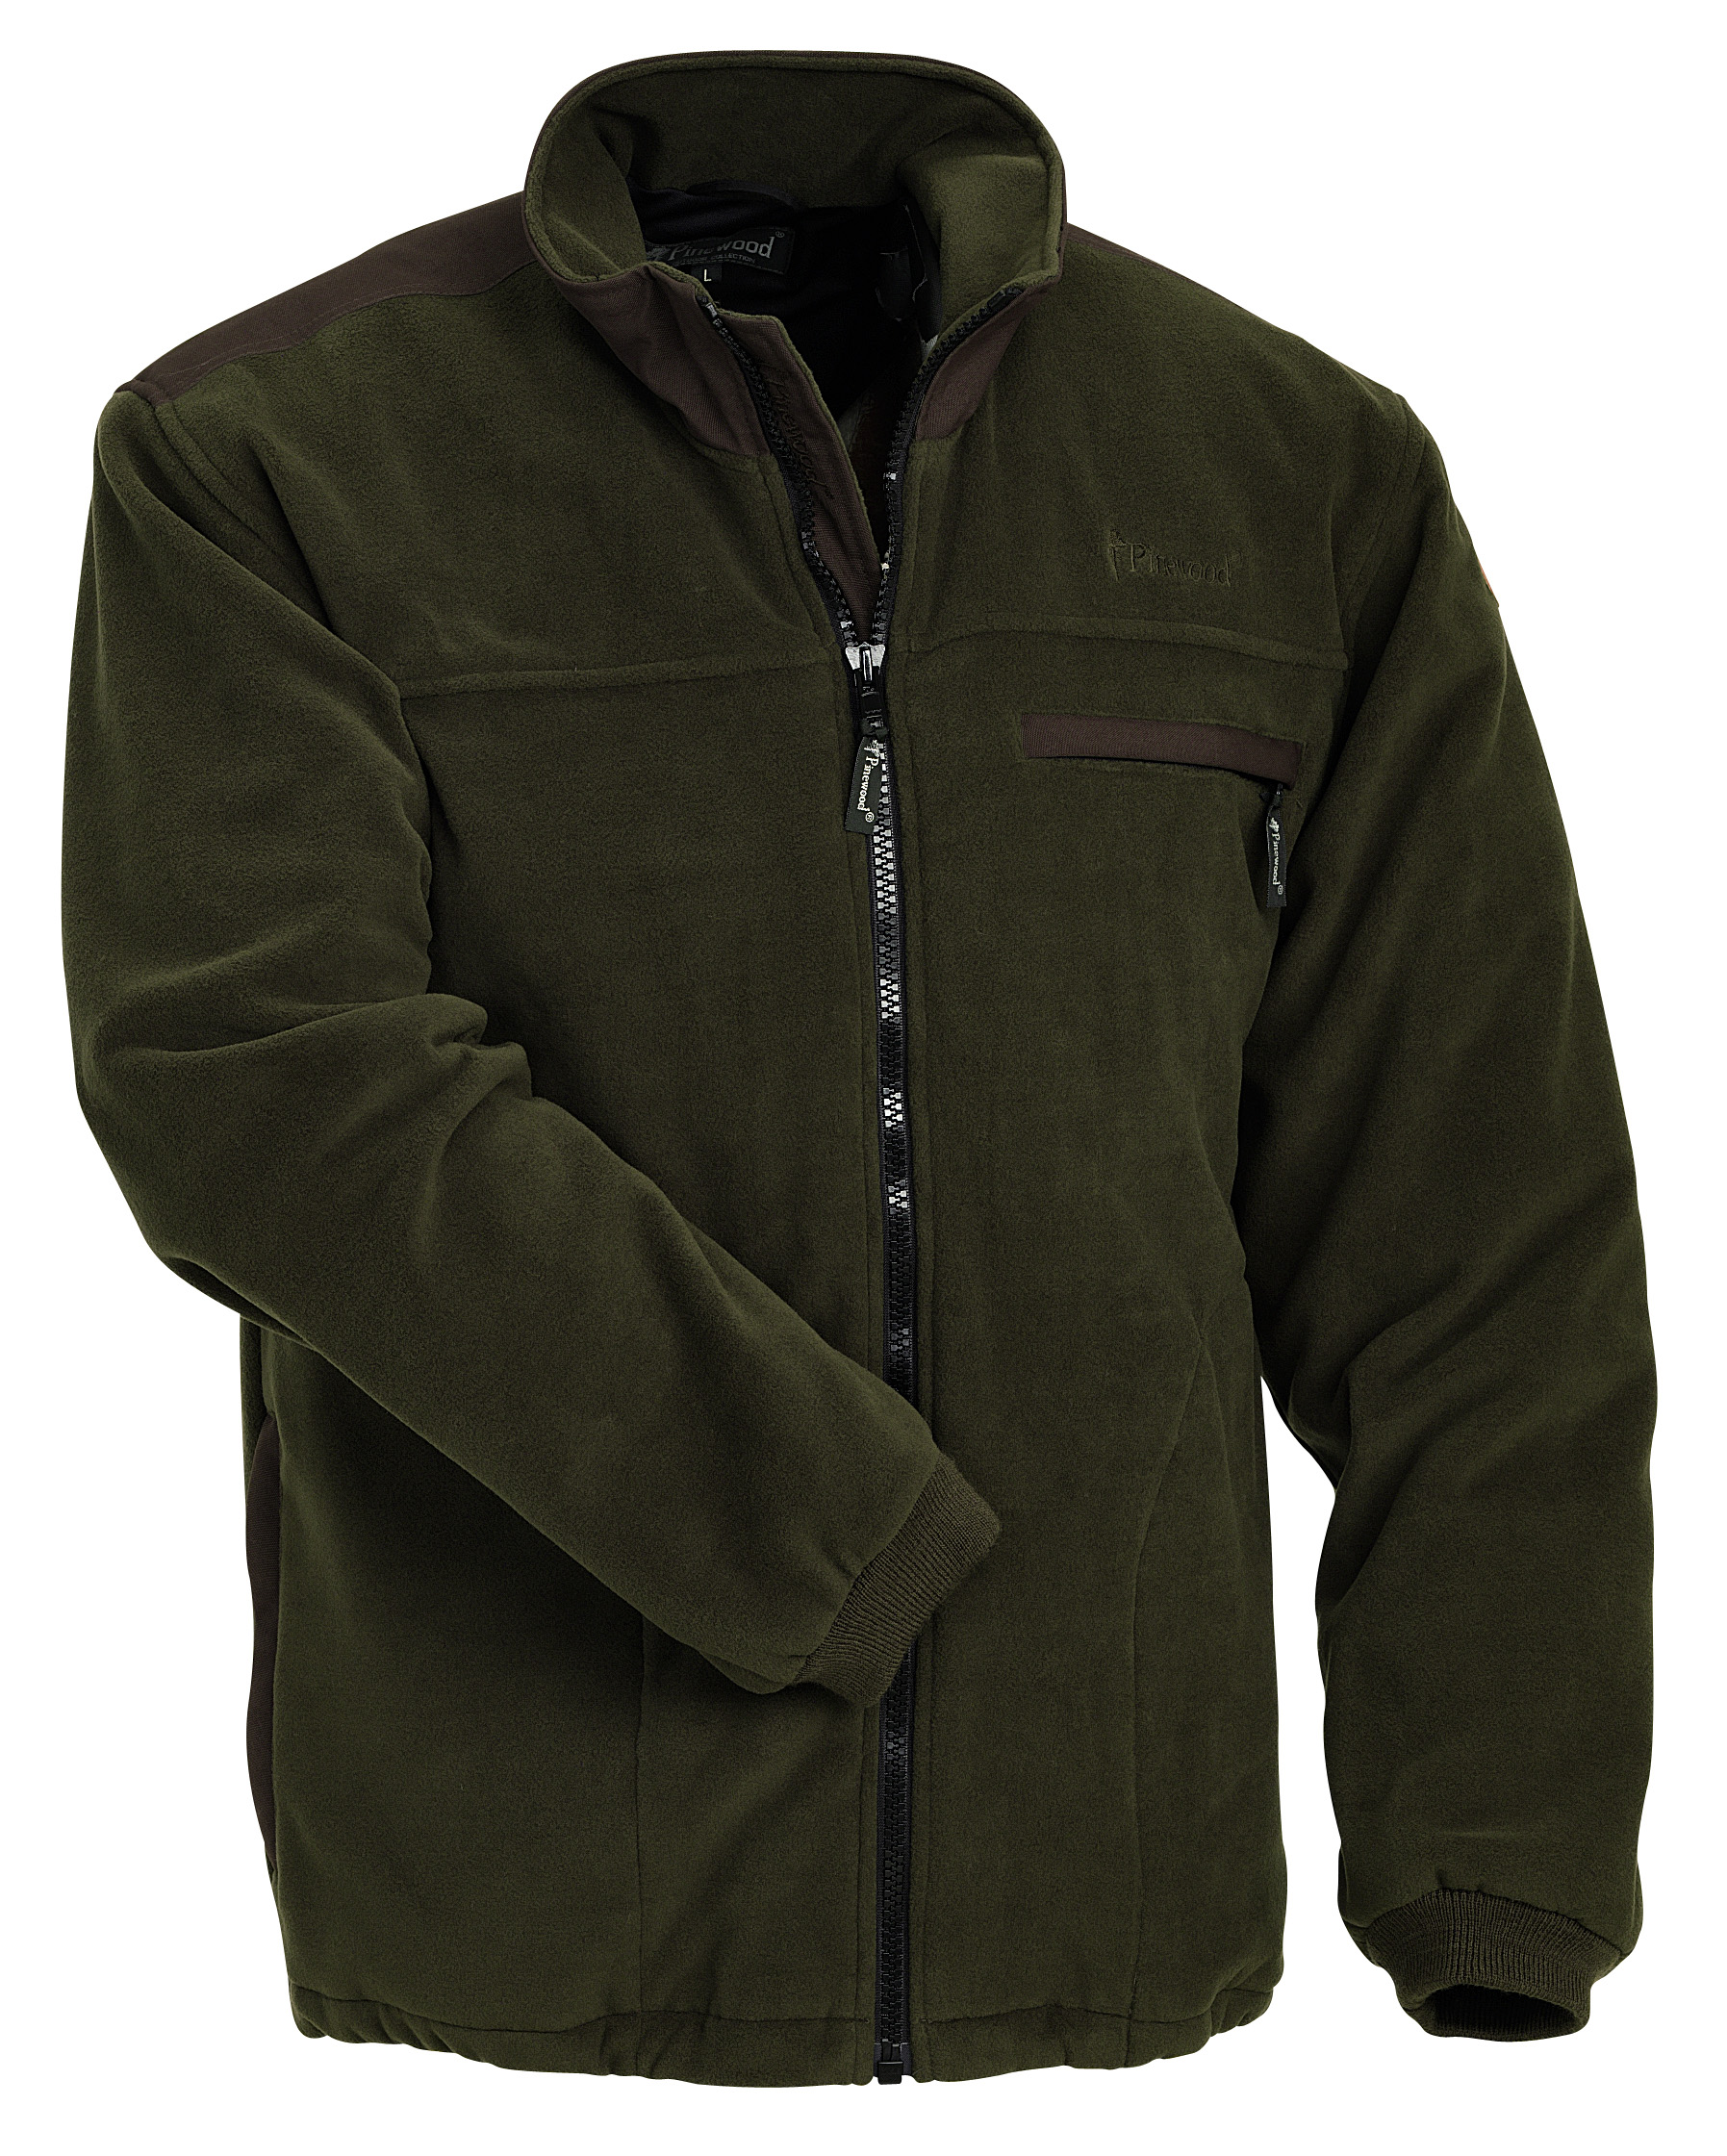 Pinewood fleece jacket